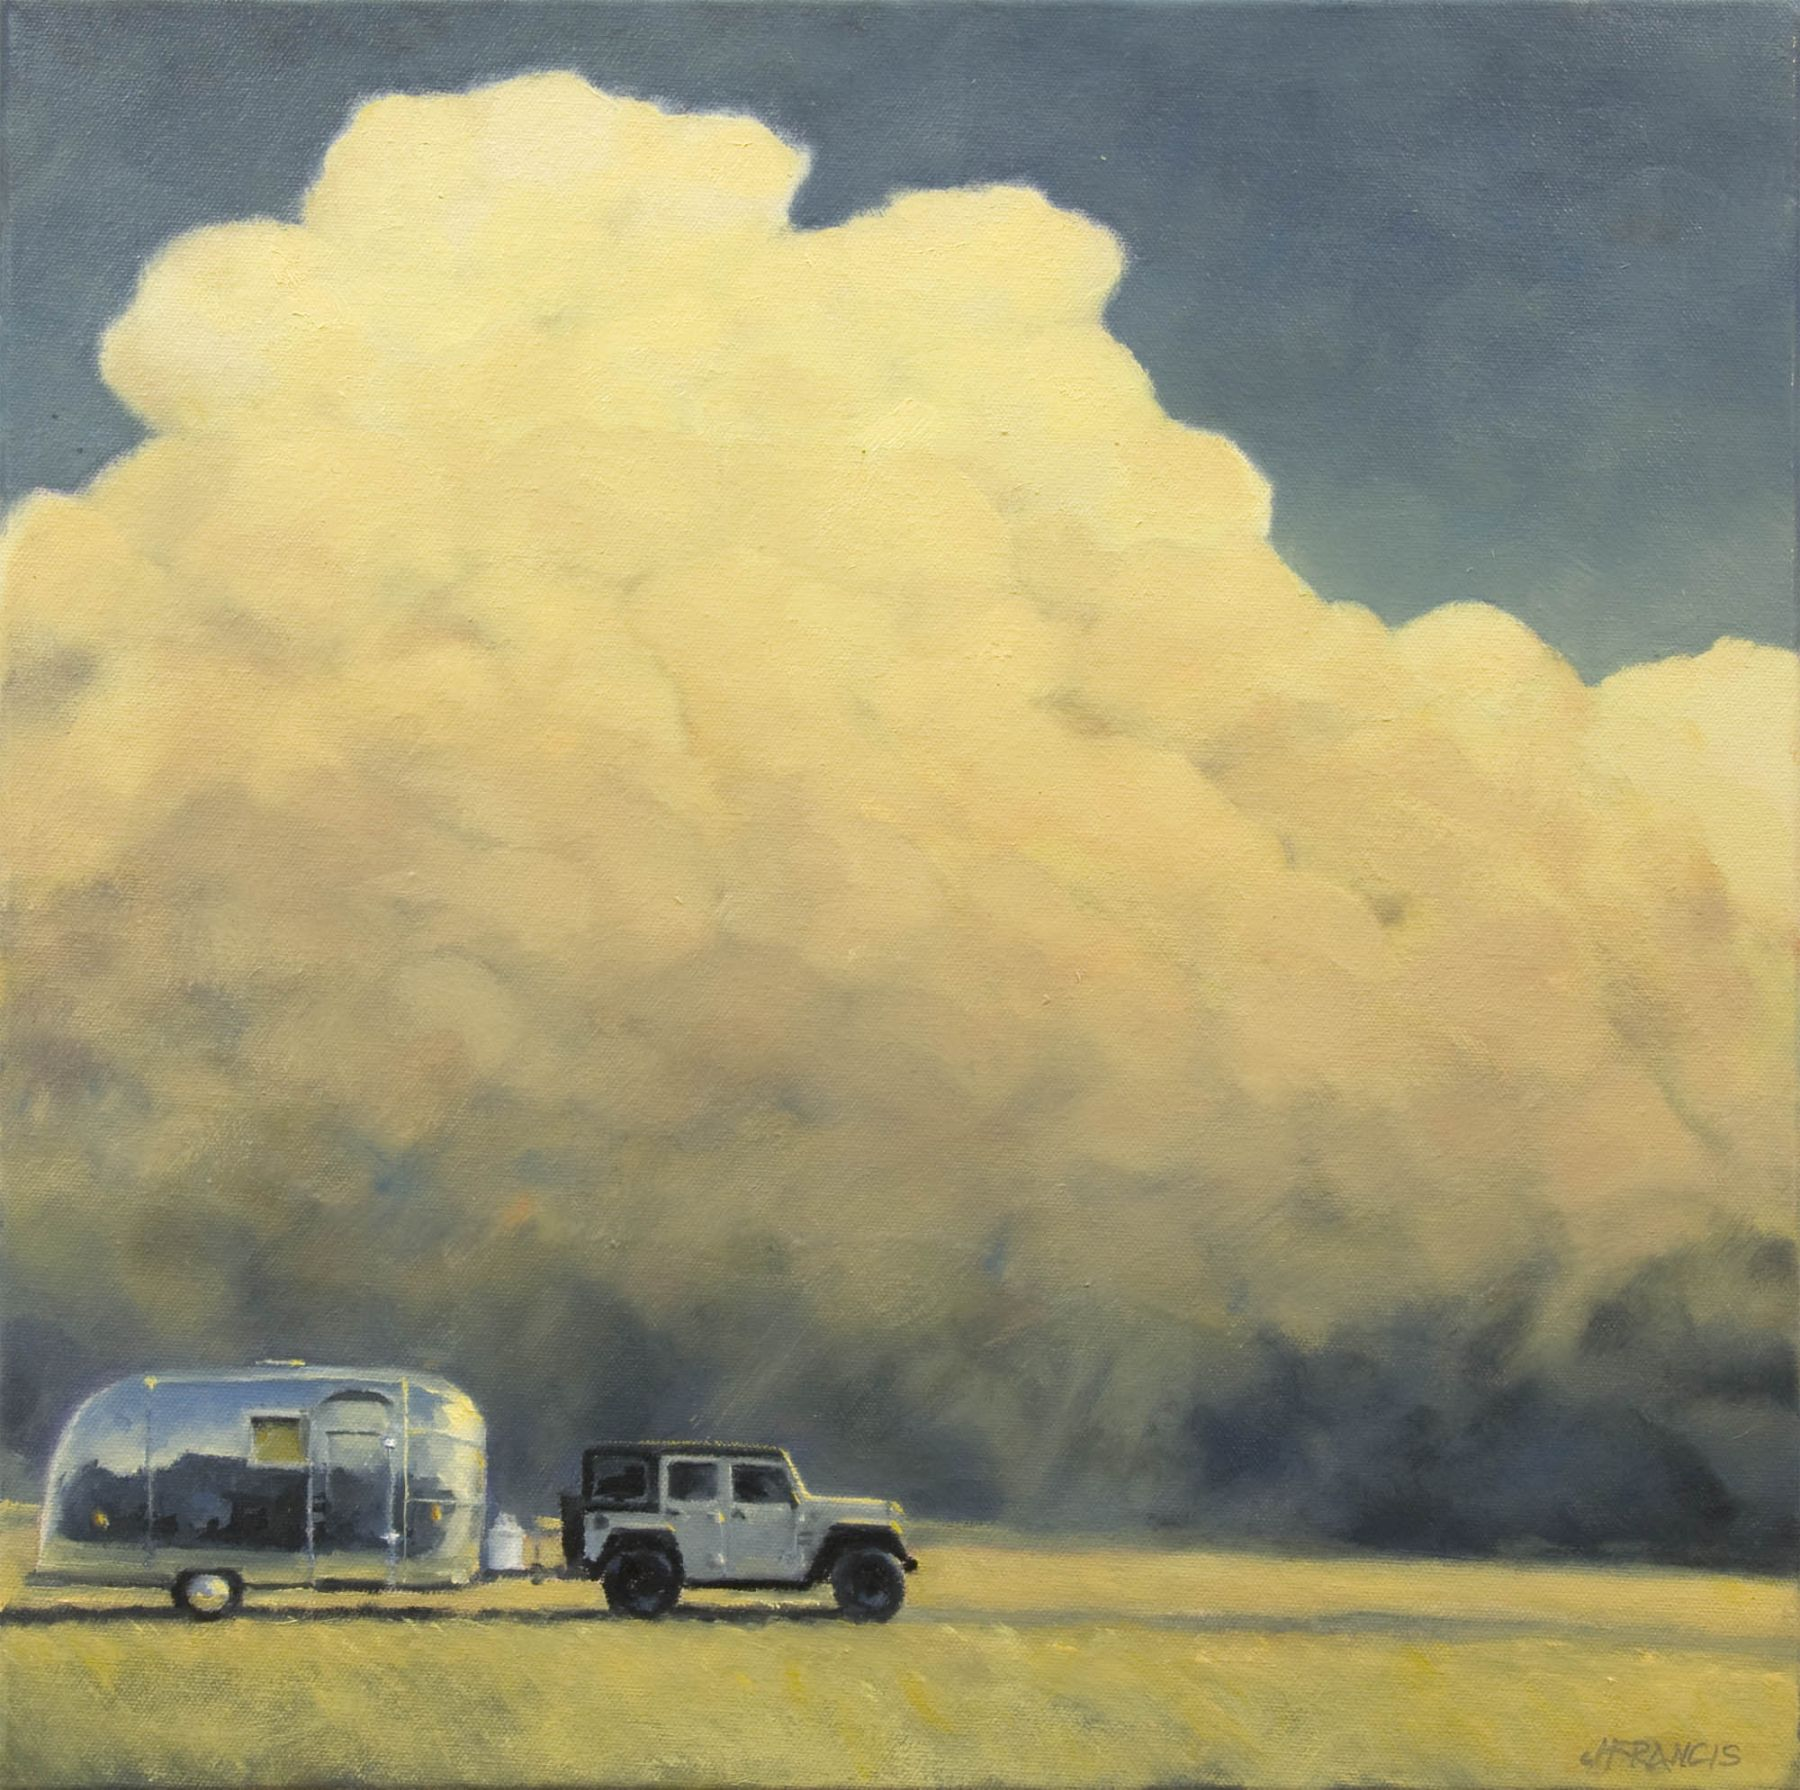 Jon Francis, Storm Chasers, 2017